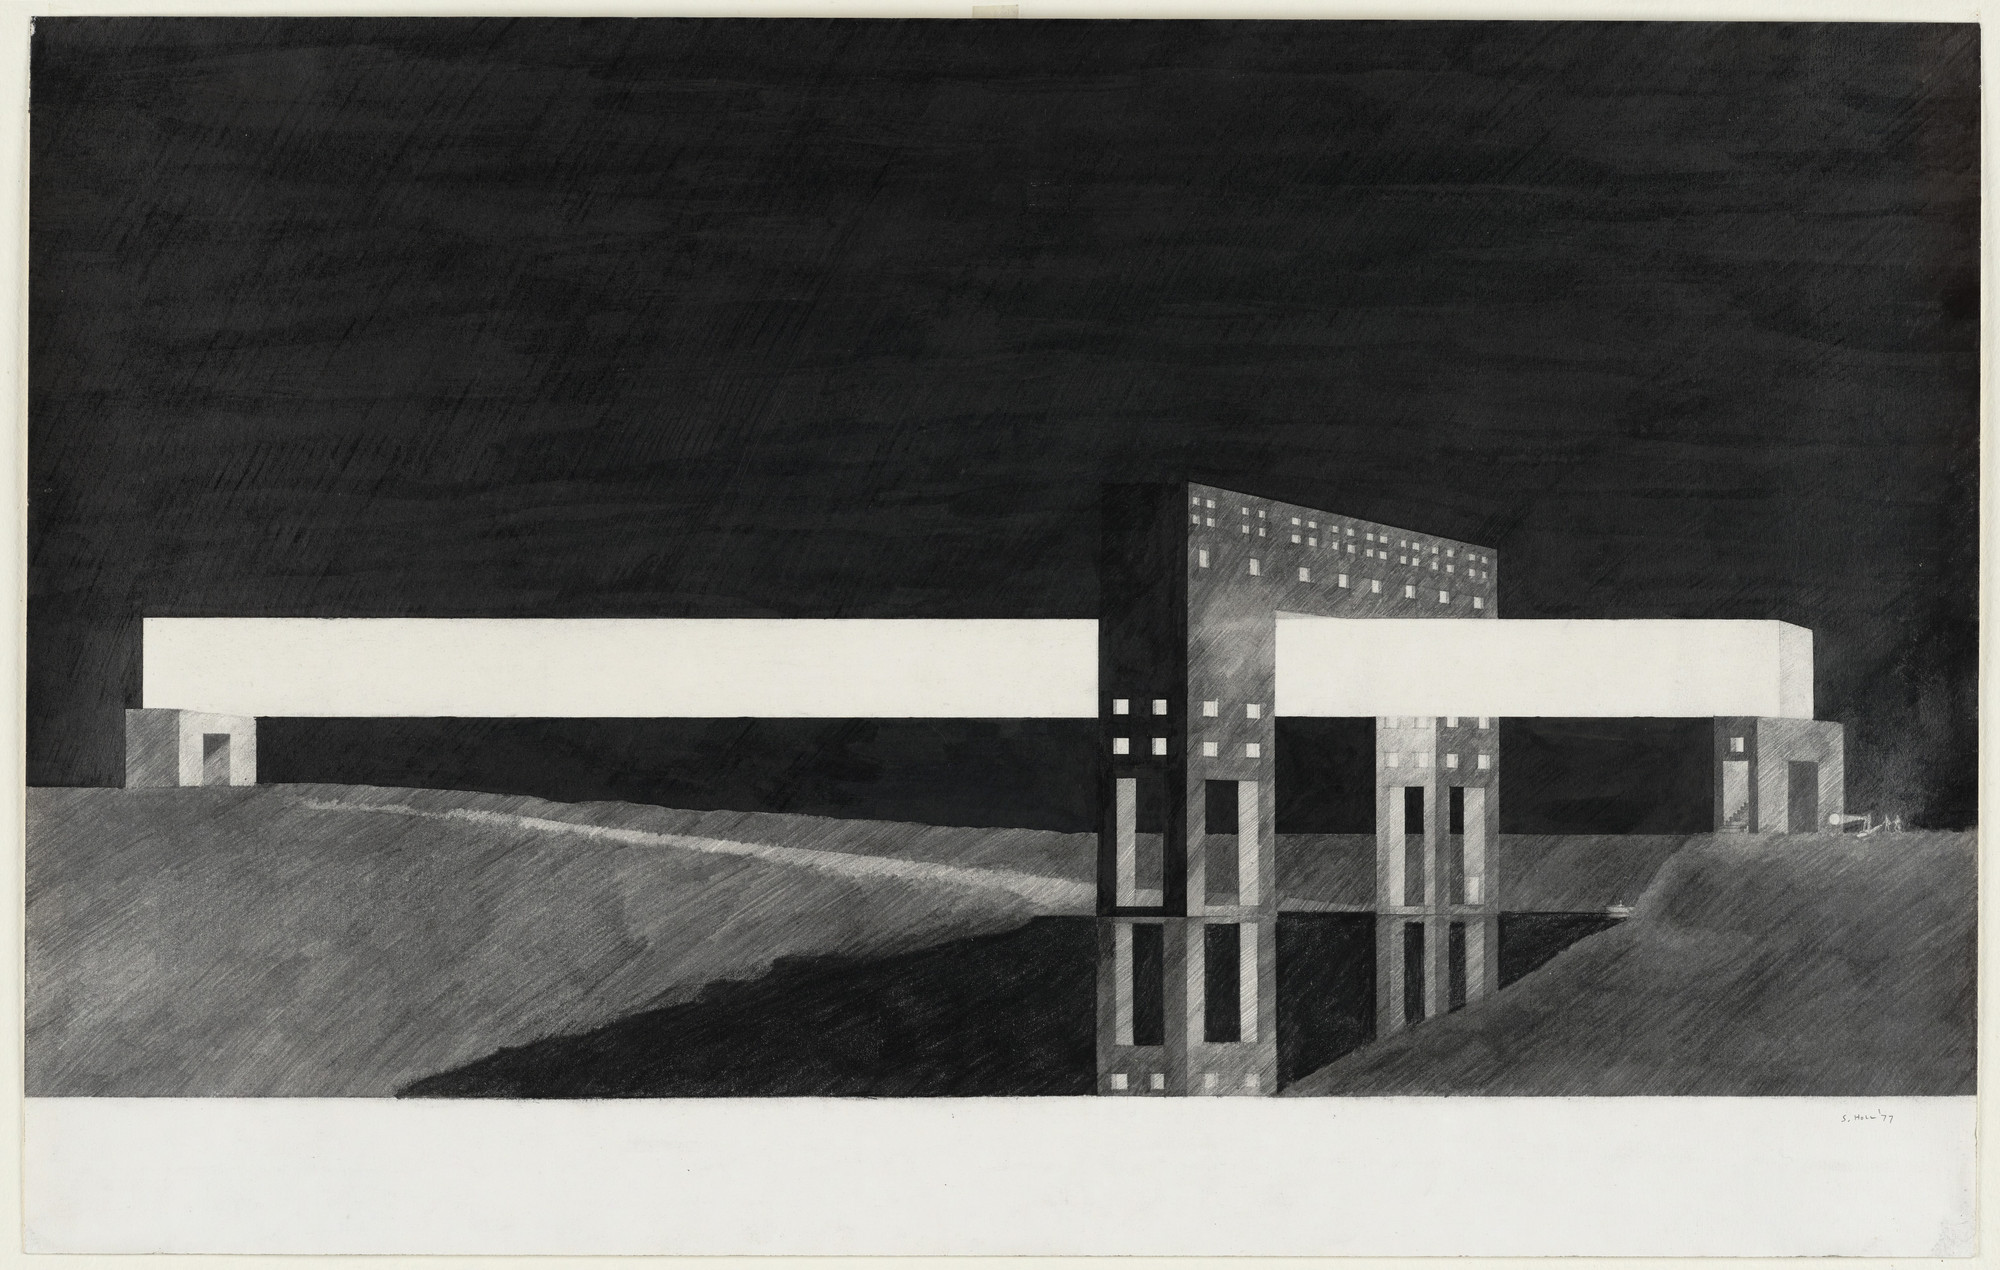 Steven Holl. Gymnasium-Bridge Project, New York, New York, Perspective. 1977